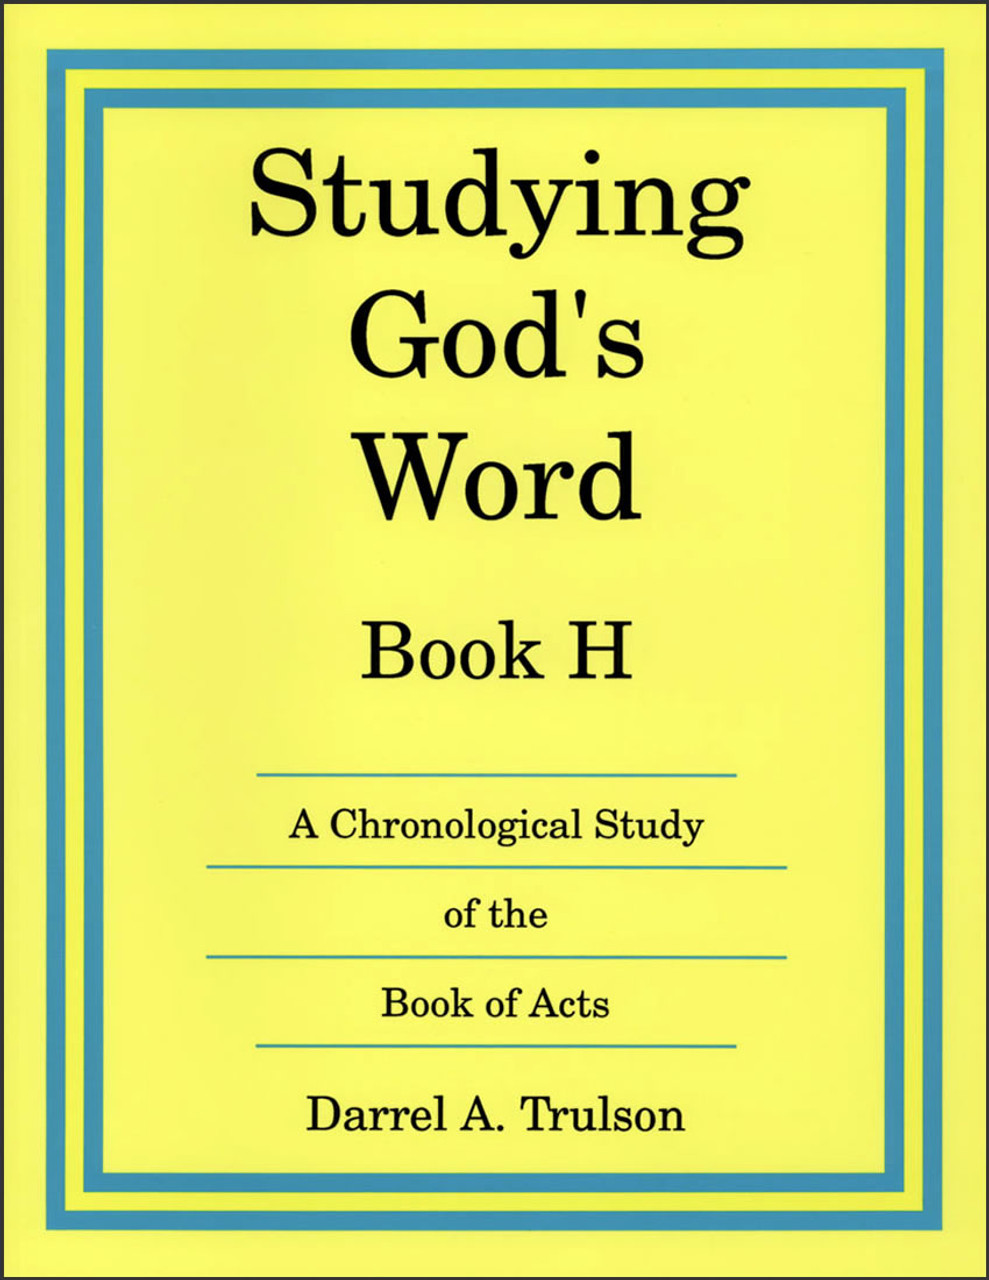 Studying God's Word Book H